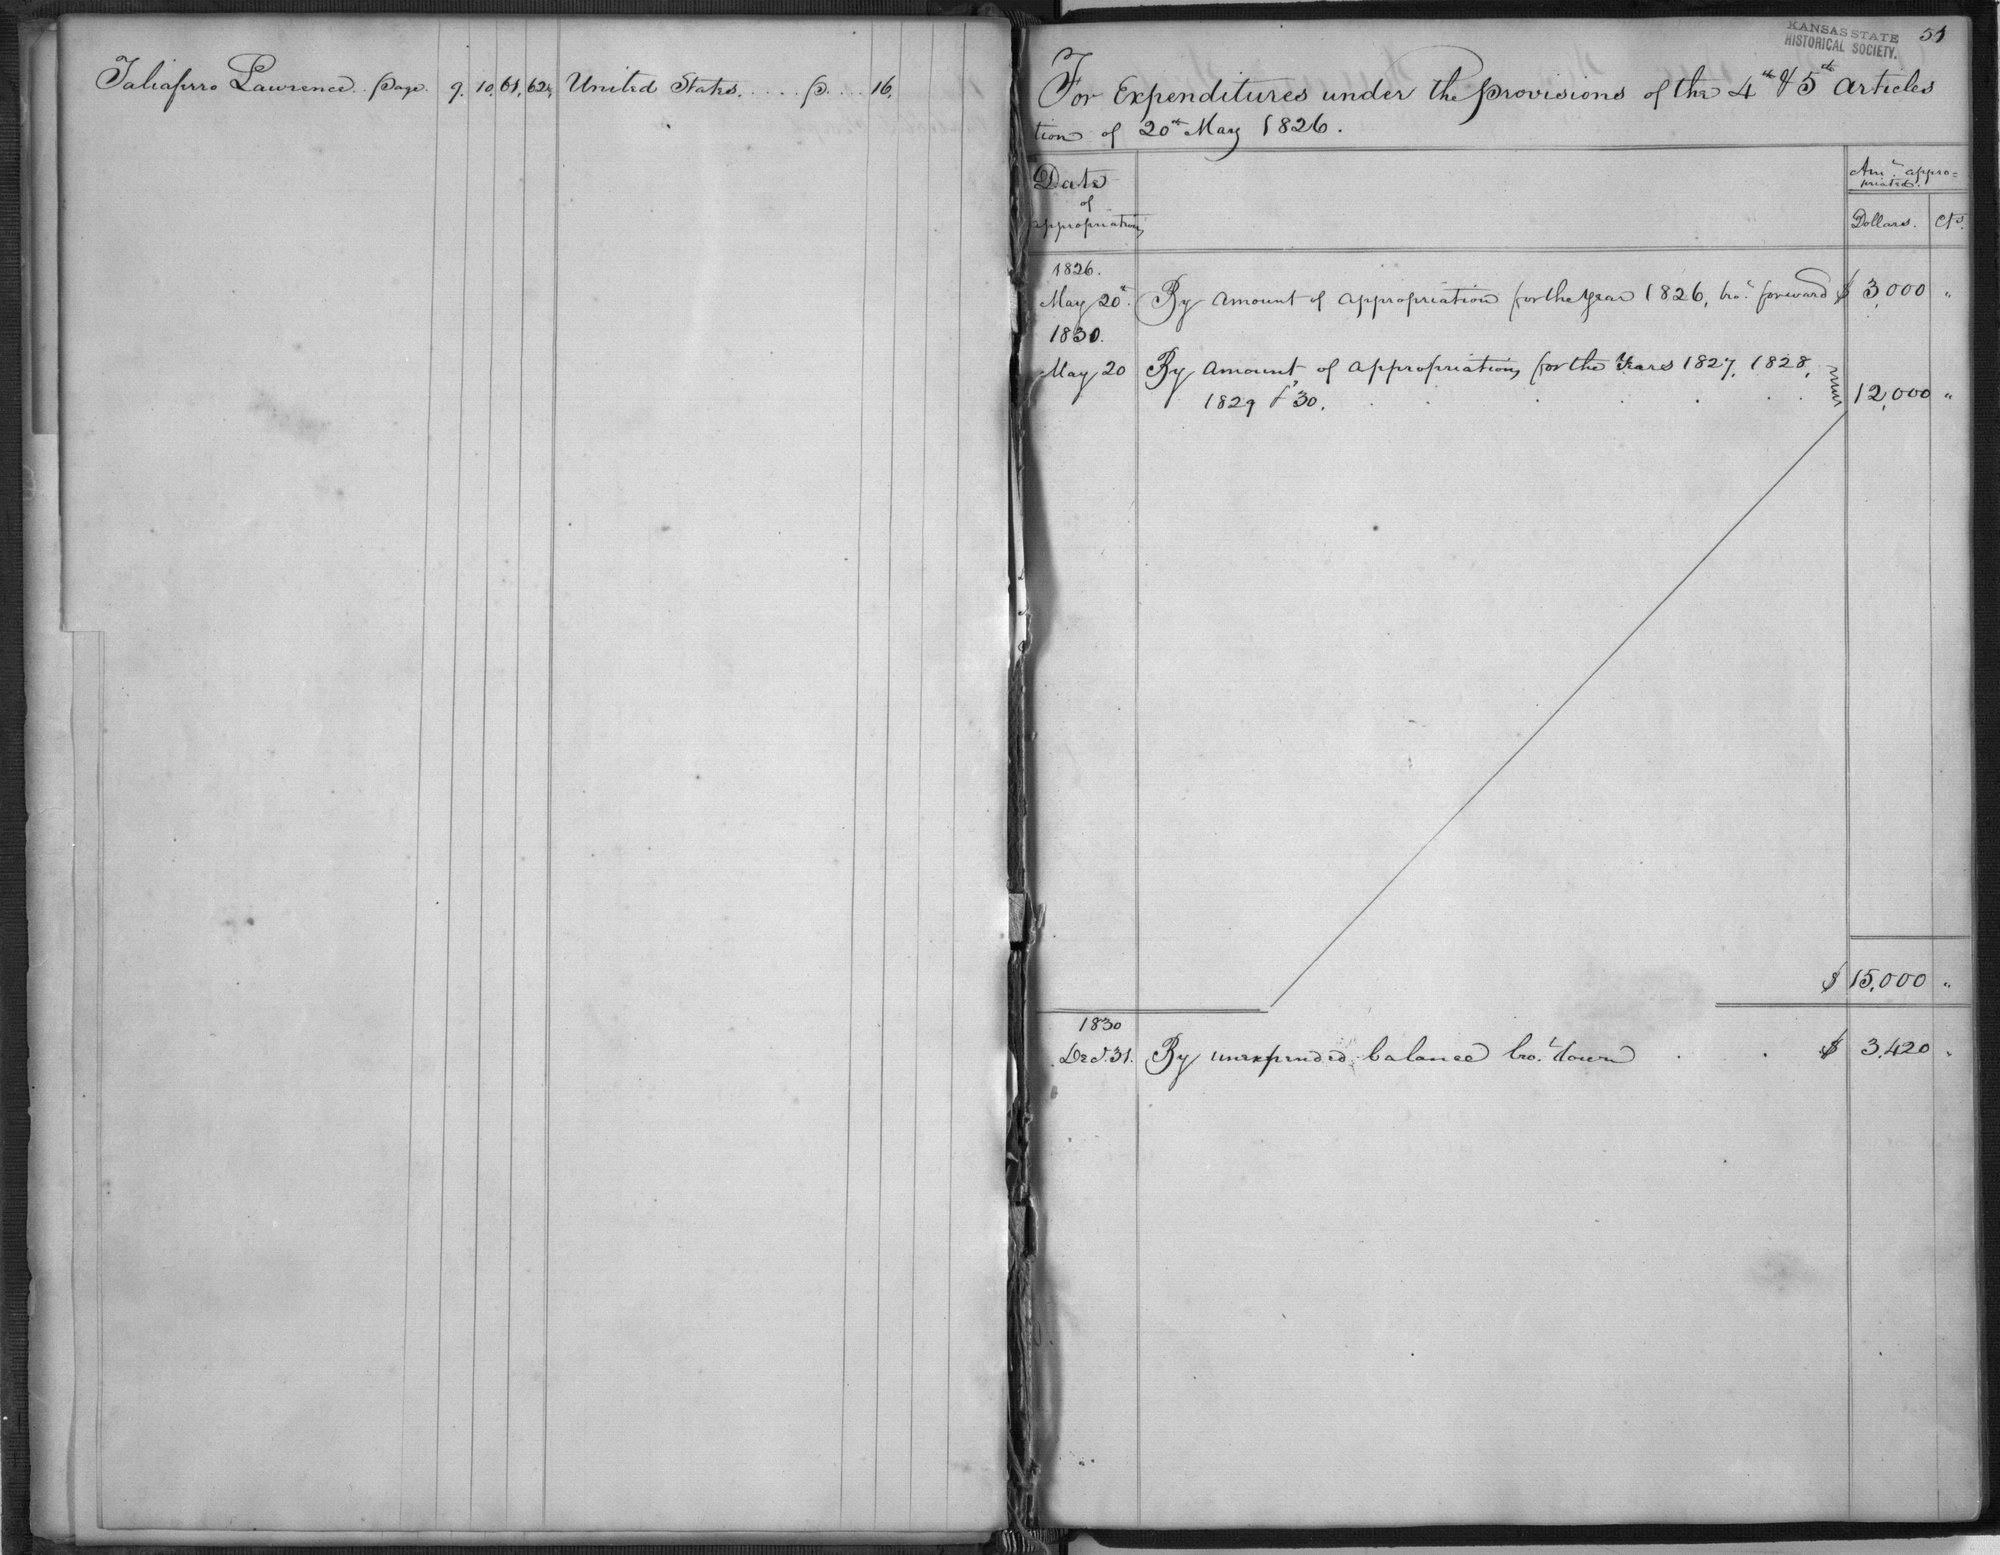 United States Office of Indian Affairs, Central Superintendency, St. Louis, Missouri. Volume 26, Accounts - Index T - U  & page 51